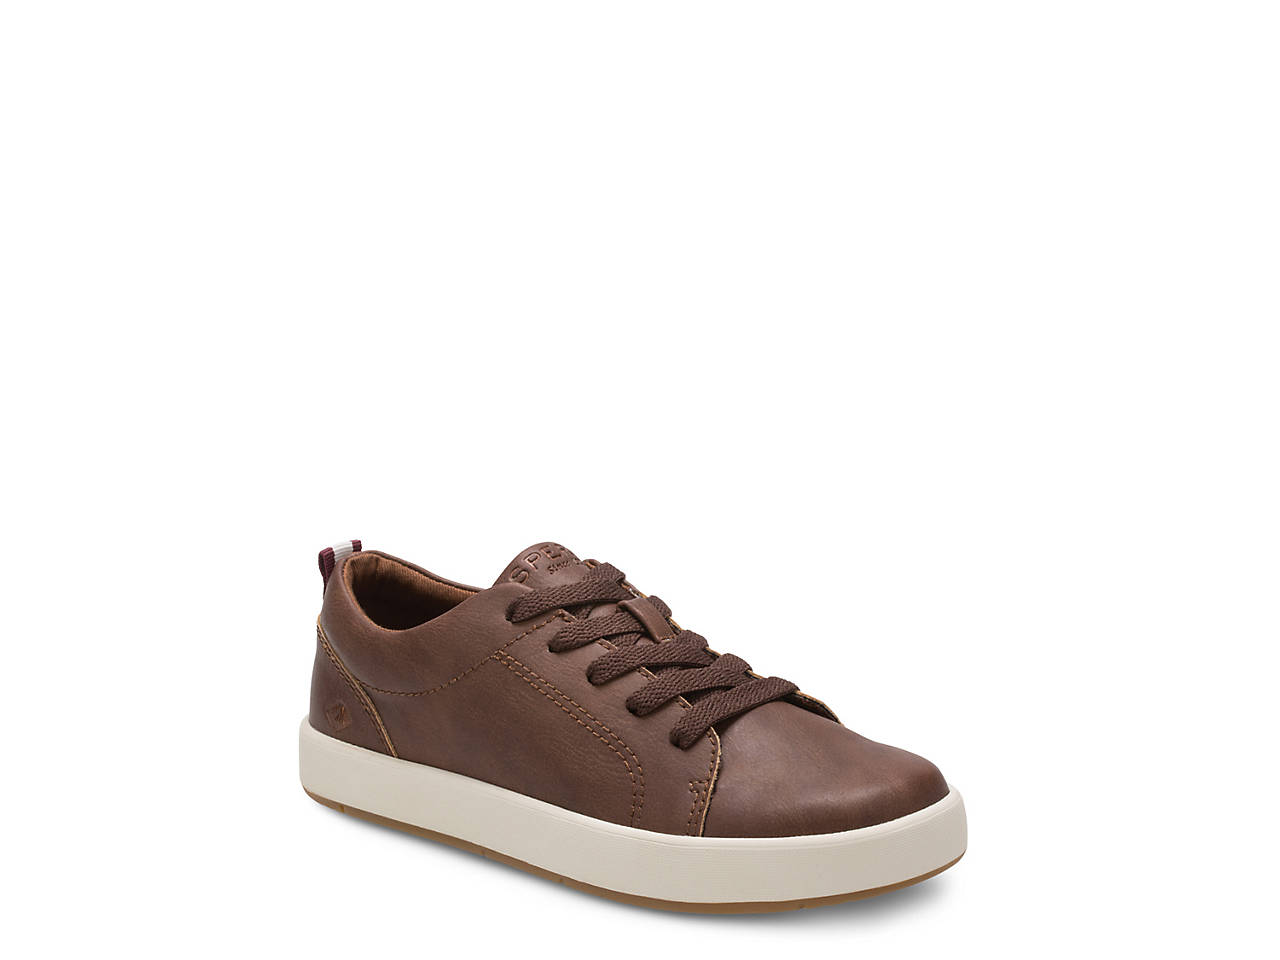 71c11878c077 Sperry Top-Sider Cruise Youth Sneaker Kids Shoes | DSW